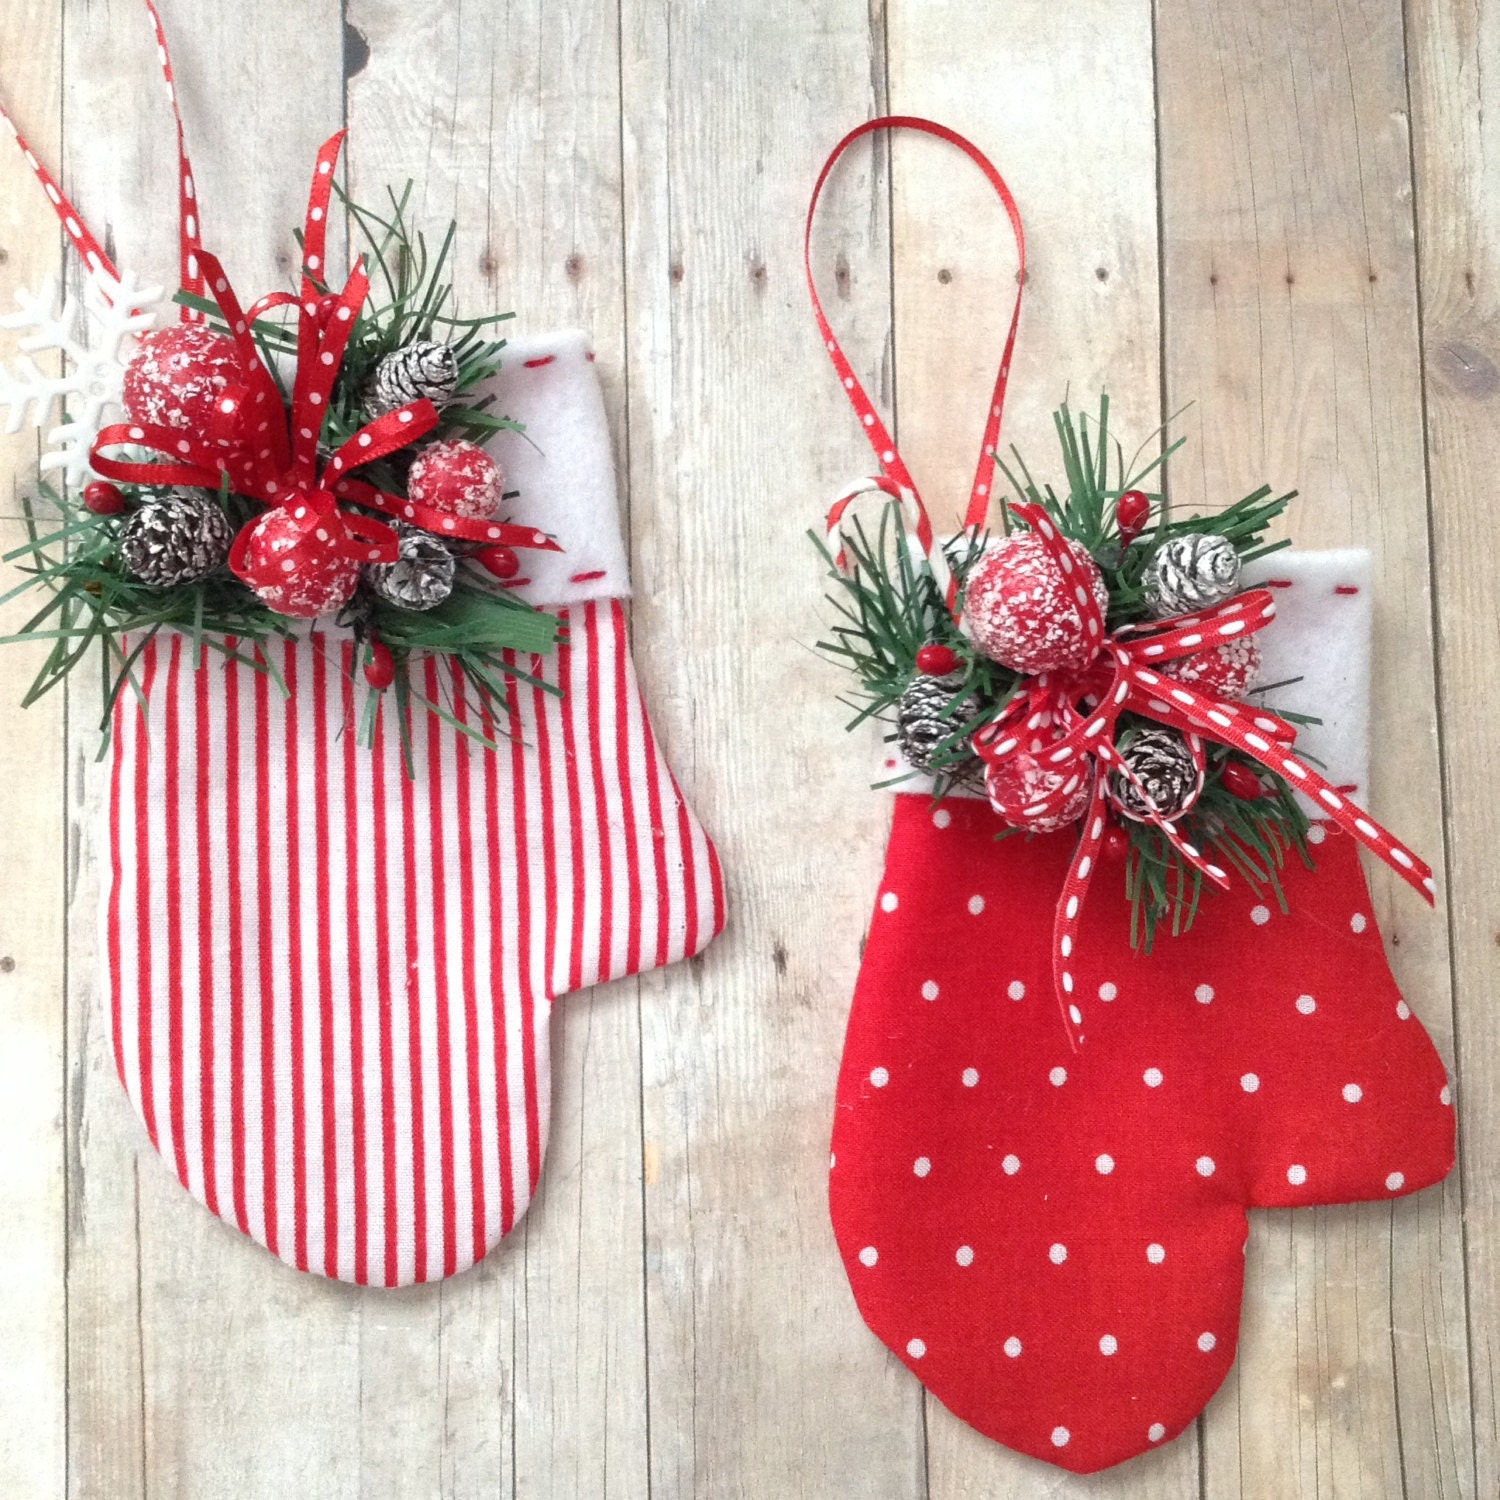 Christmas Tree Ornaments / Xmas Fabric Handmade By